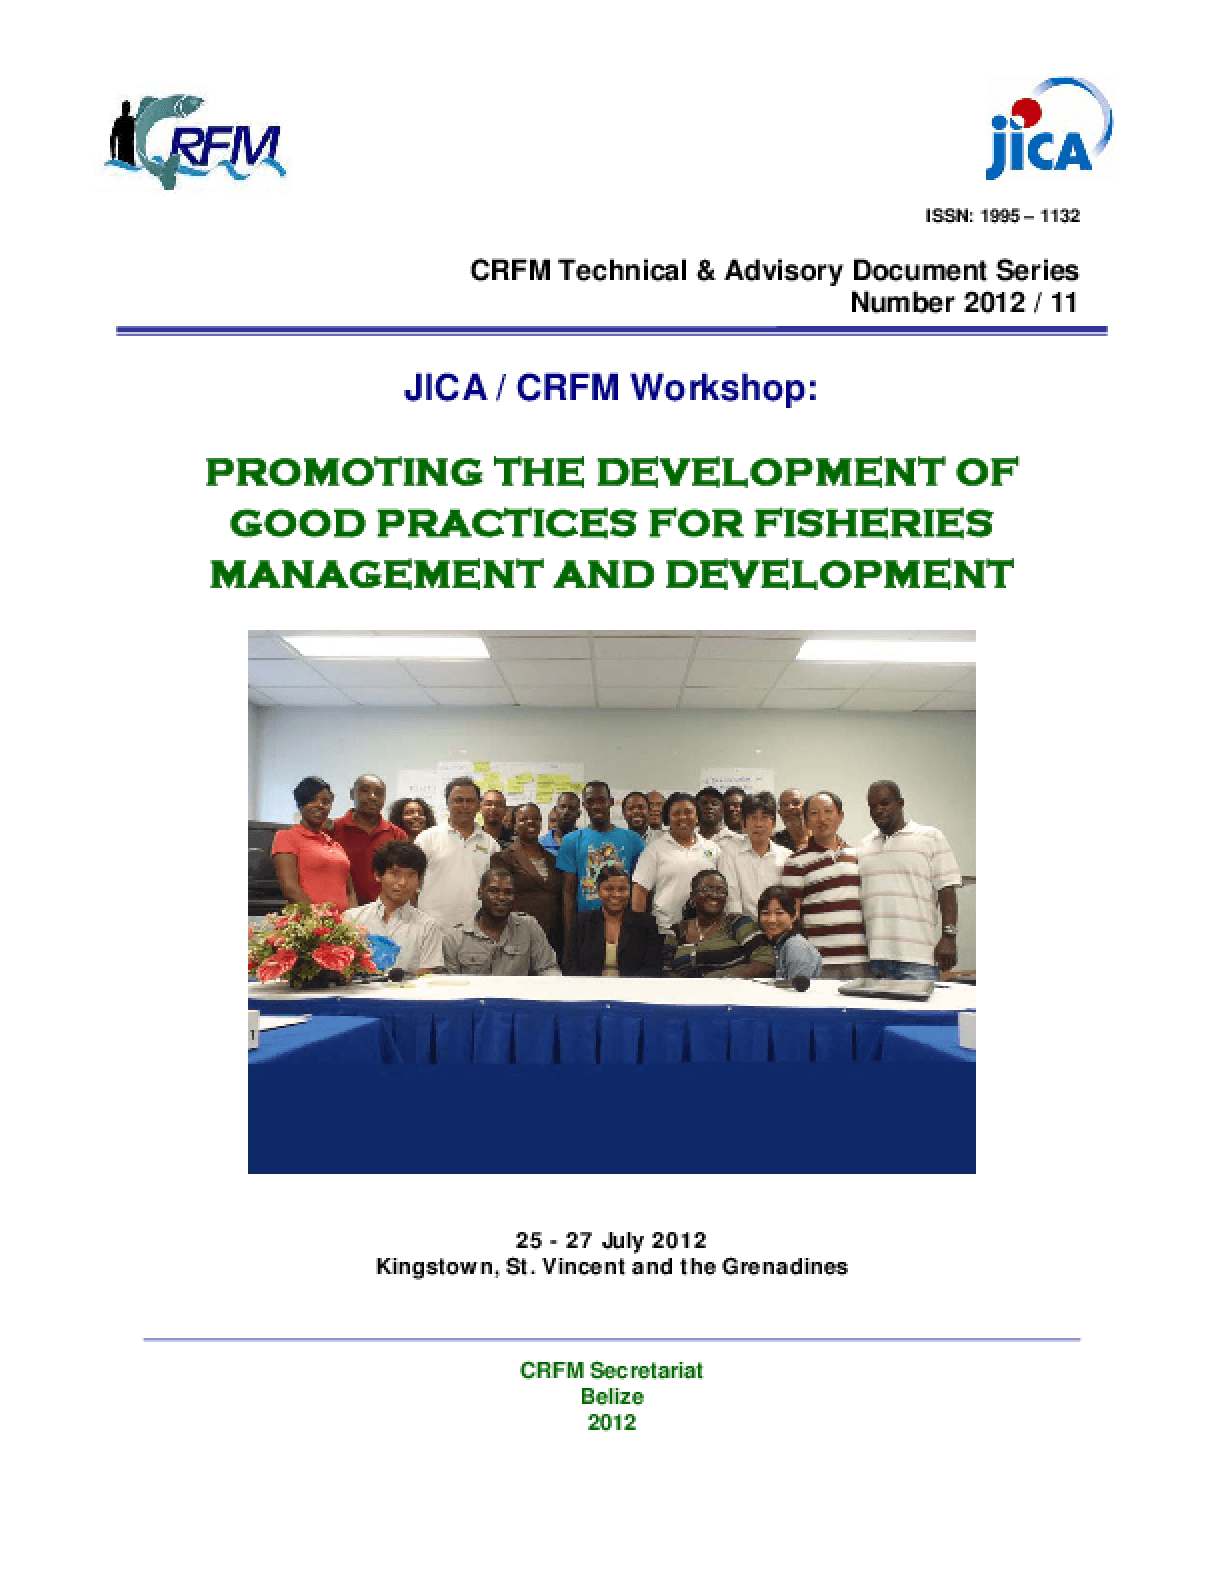 Report of the JICA/CRFM Workshop: Promoting the Development of Good Practices for Fisheries Management and Development, 25-27 July 2012, St. Vincent and the Grenadine